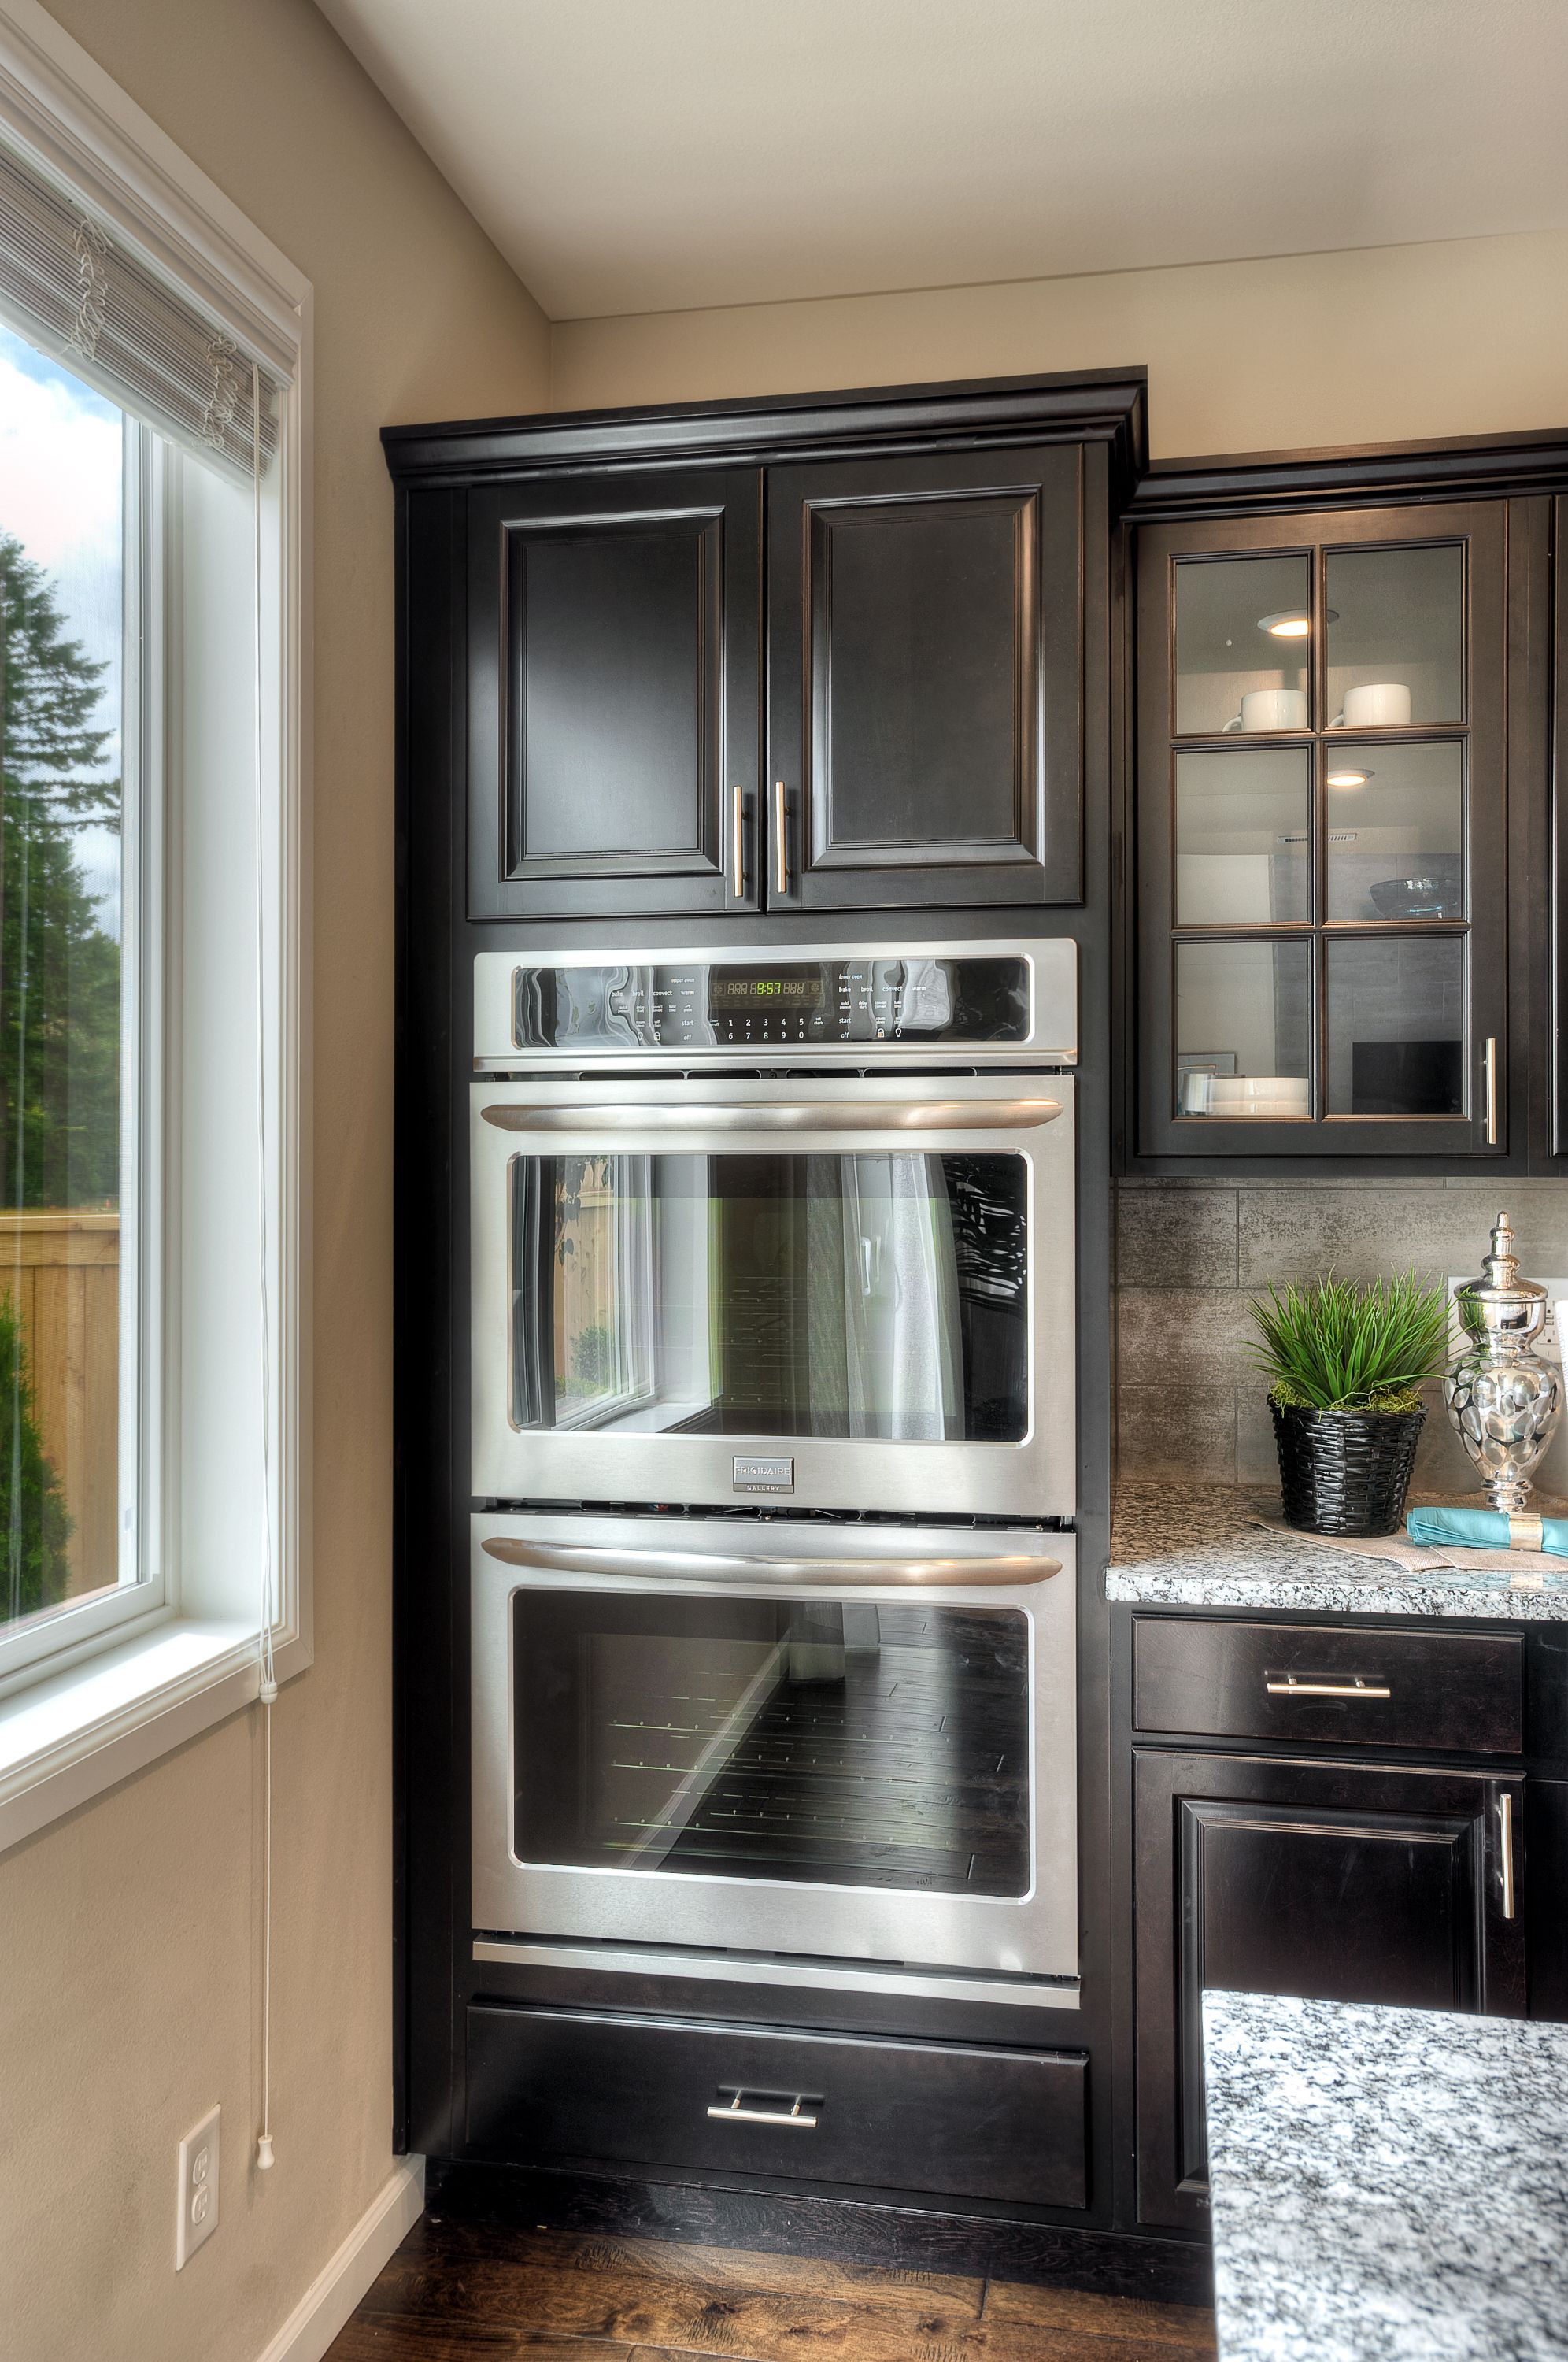 Double Ovens In The Carnation Floorplan Built In Lidera Wall Oven Kitchen Design Small Small Kitchen